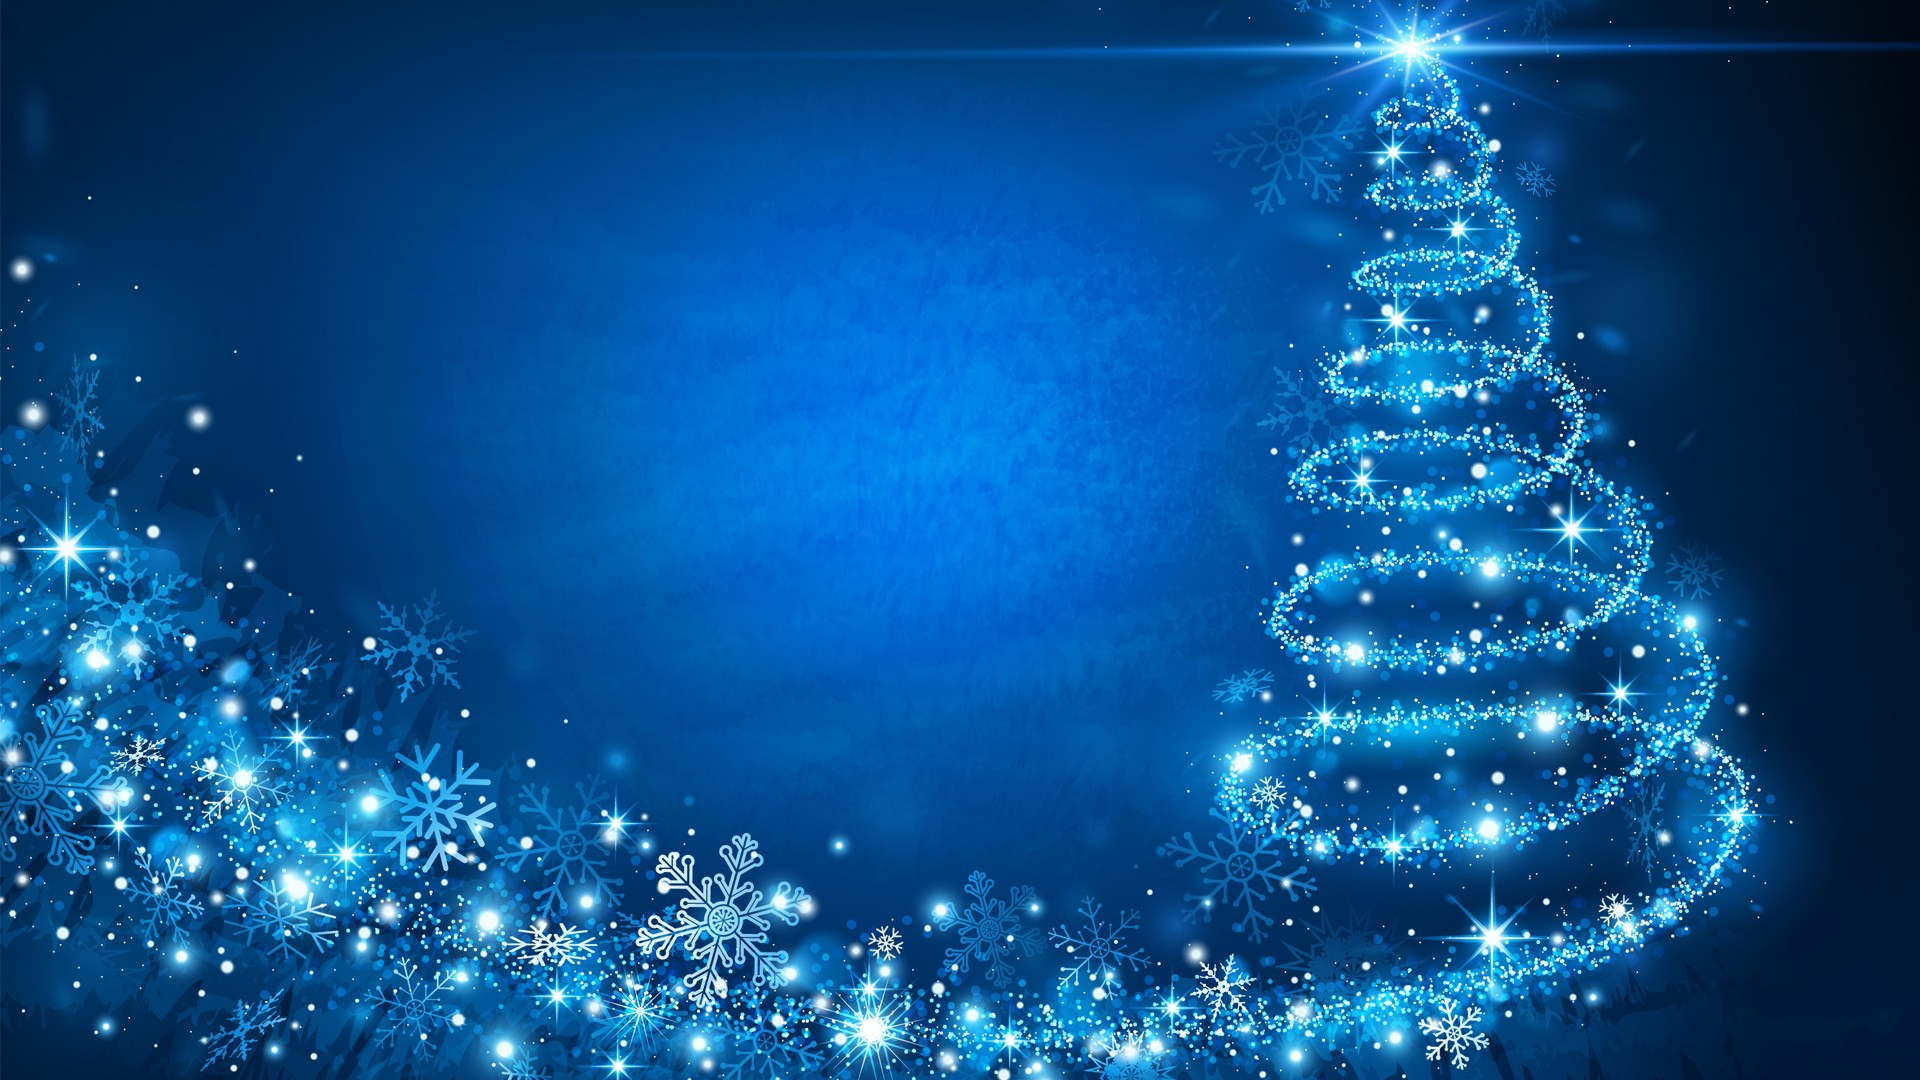 Blue Christmas Wallpaper Hd Page 2 Of 3 Wallpaper Wiki